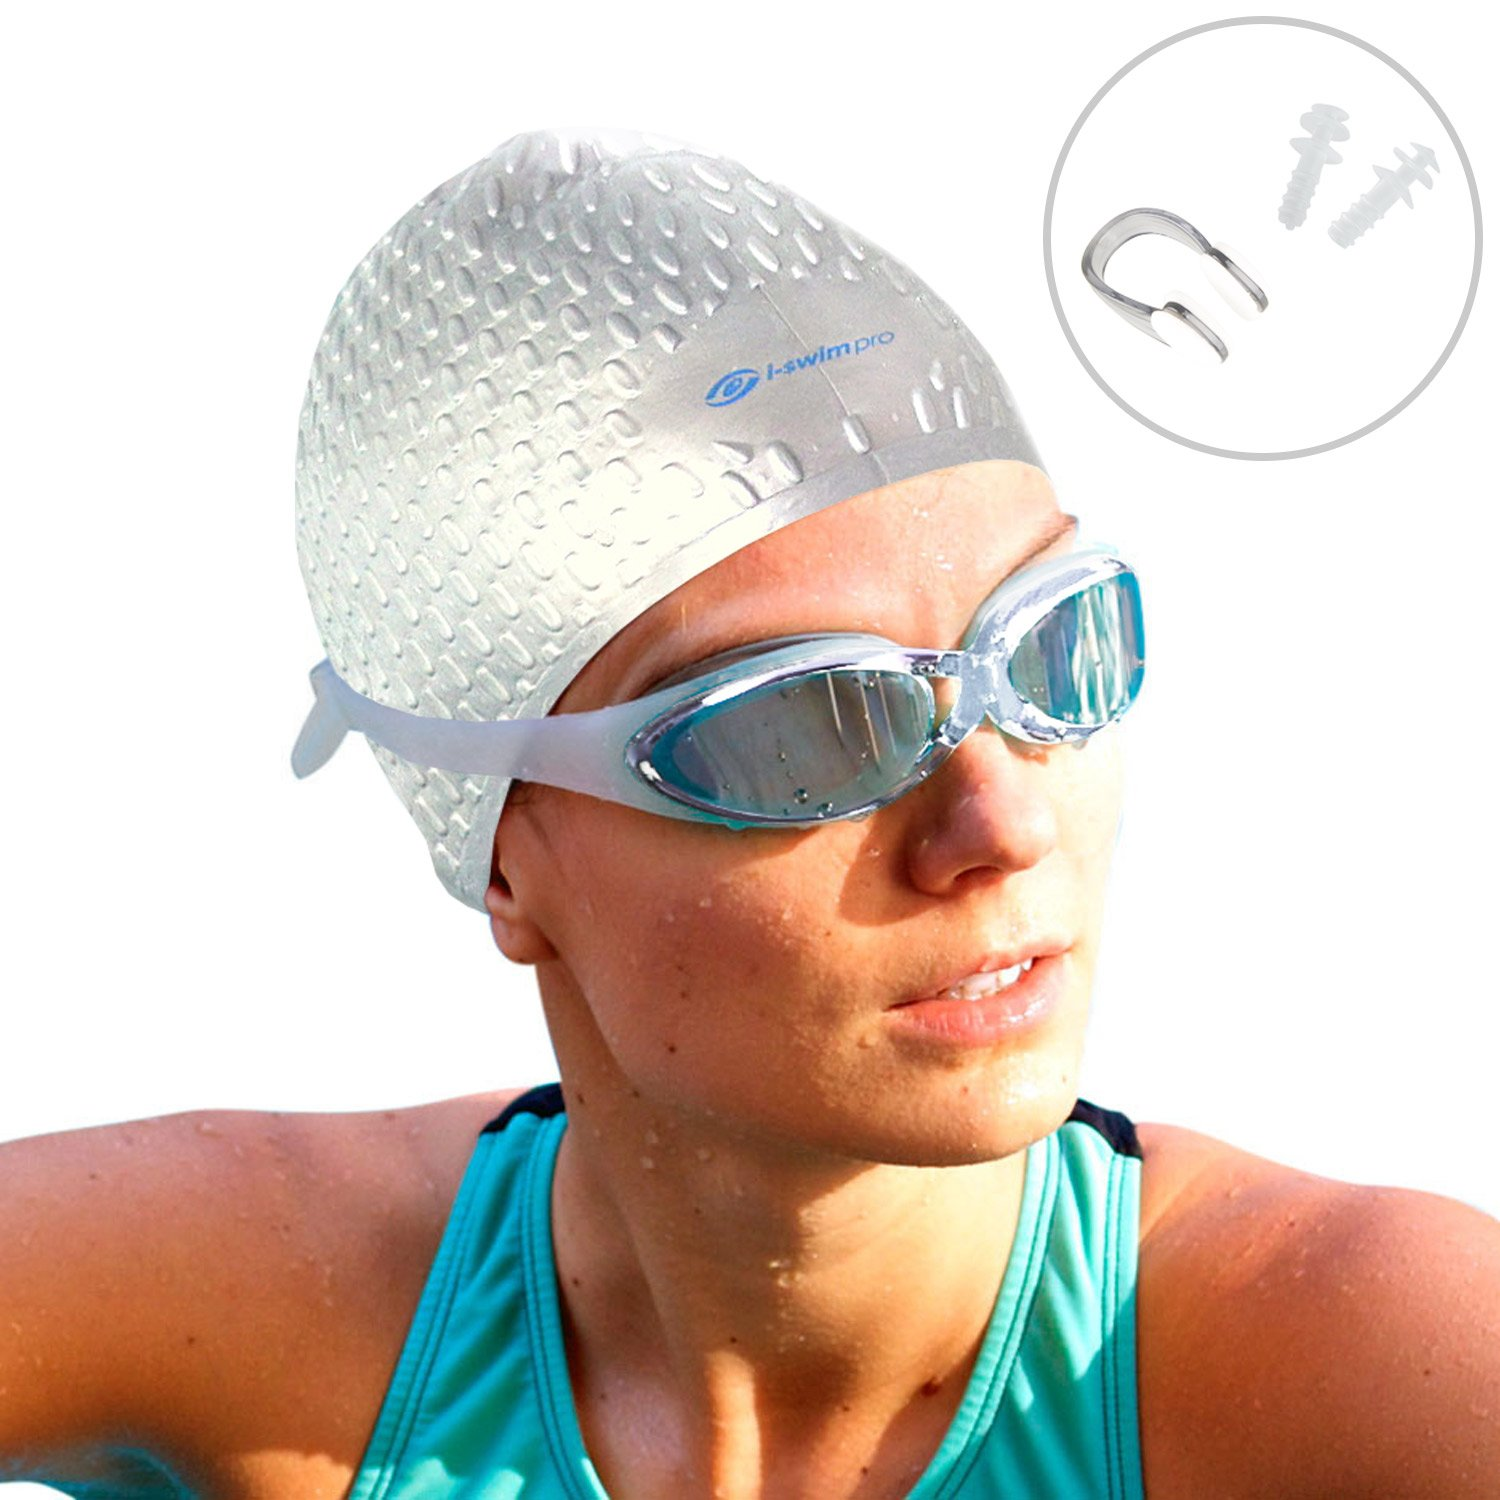 Increases Speed Stays In Place Comfortable Ear Plugs Thick And Short Hair Best Swim Hats For Protecting Long Strong Silicone i-Swim Pro Swimming Caps with Nose Clip